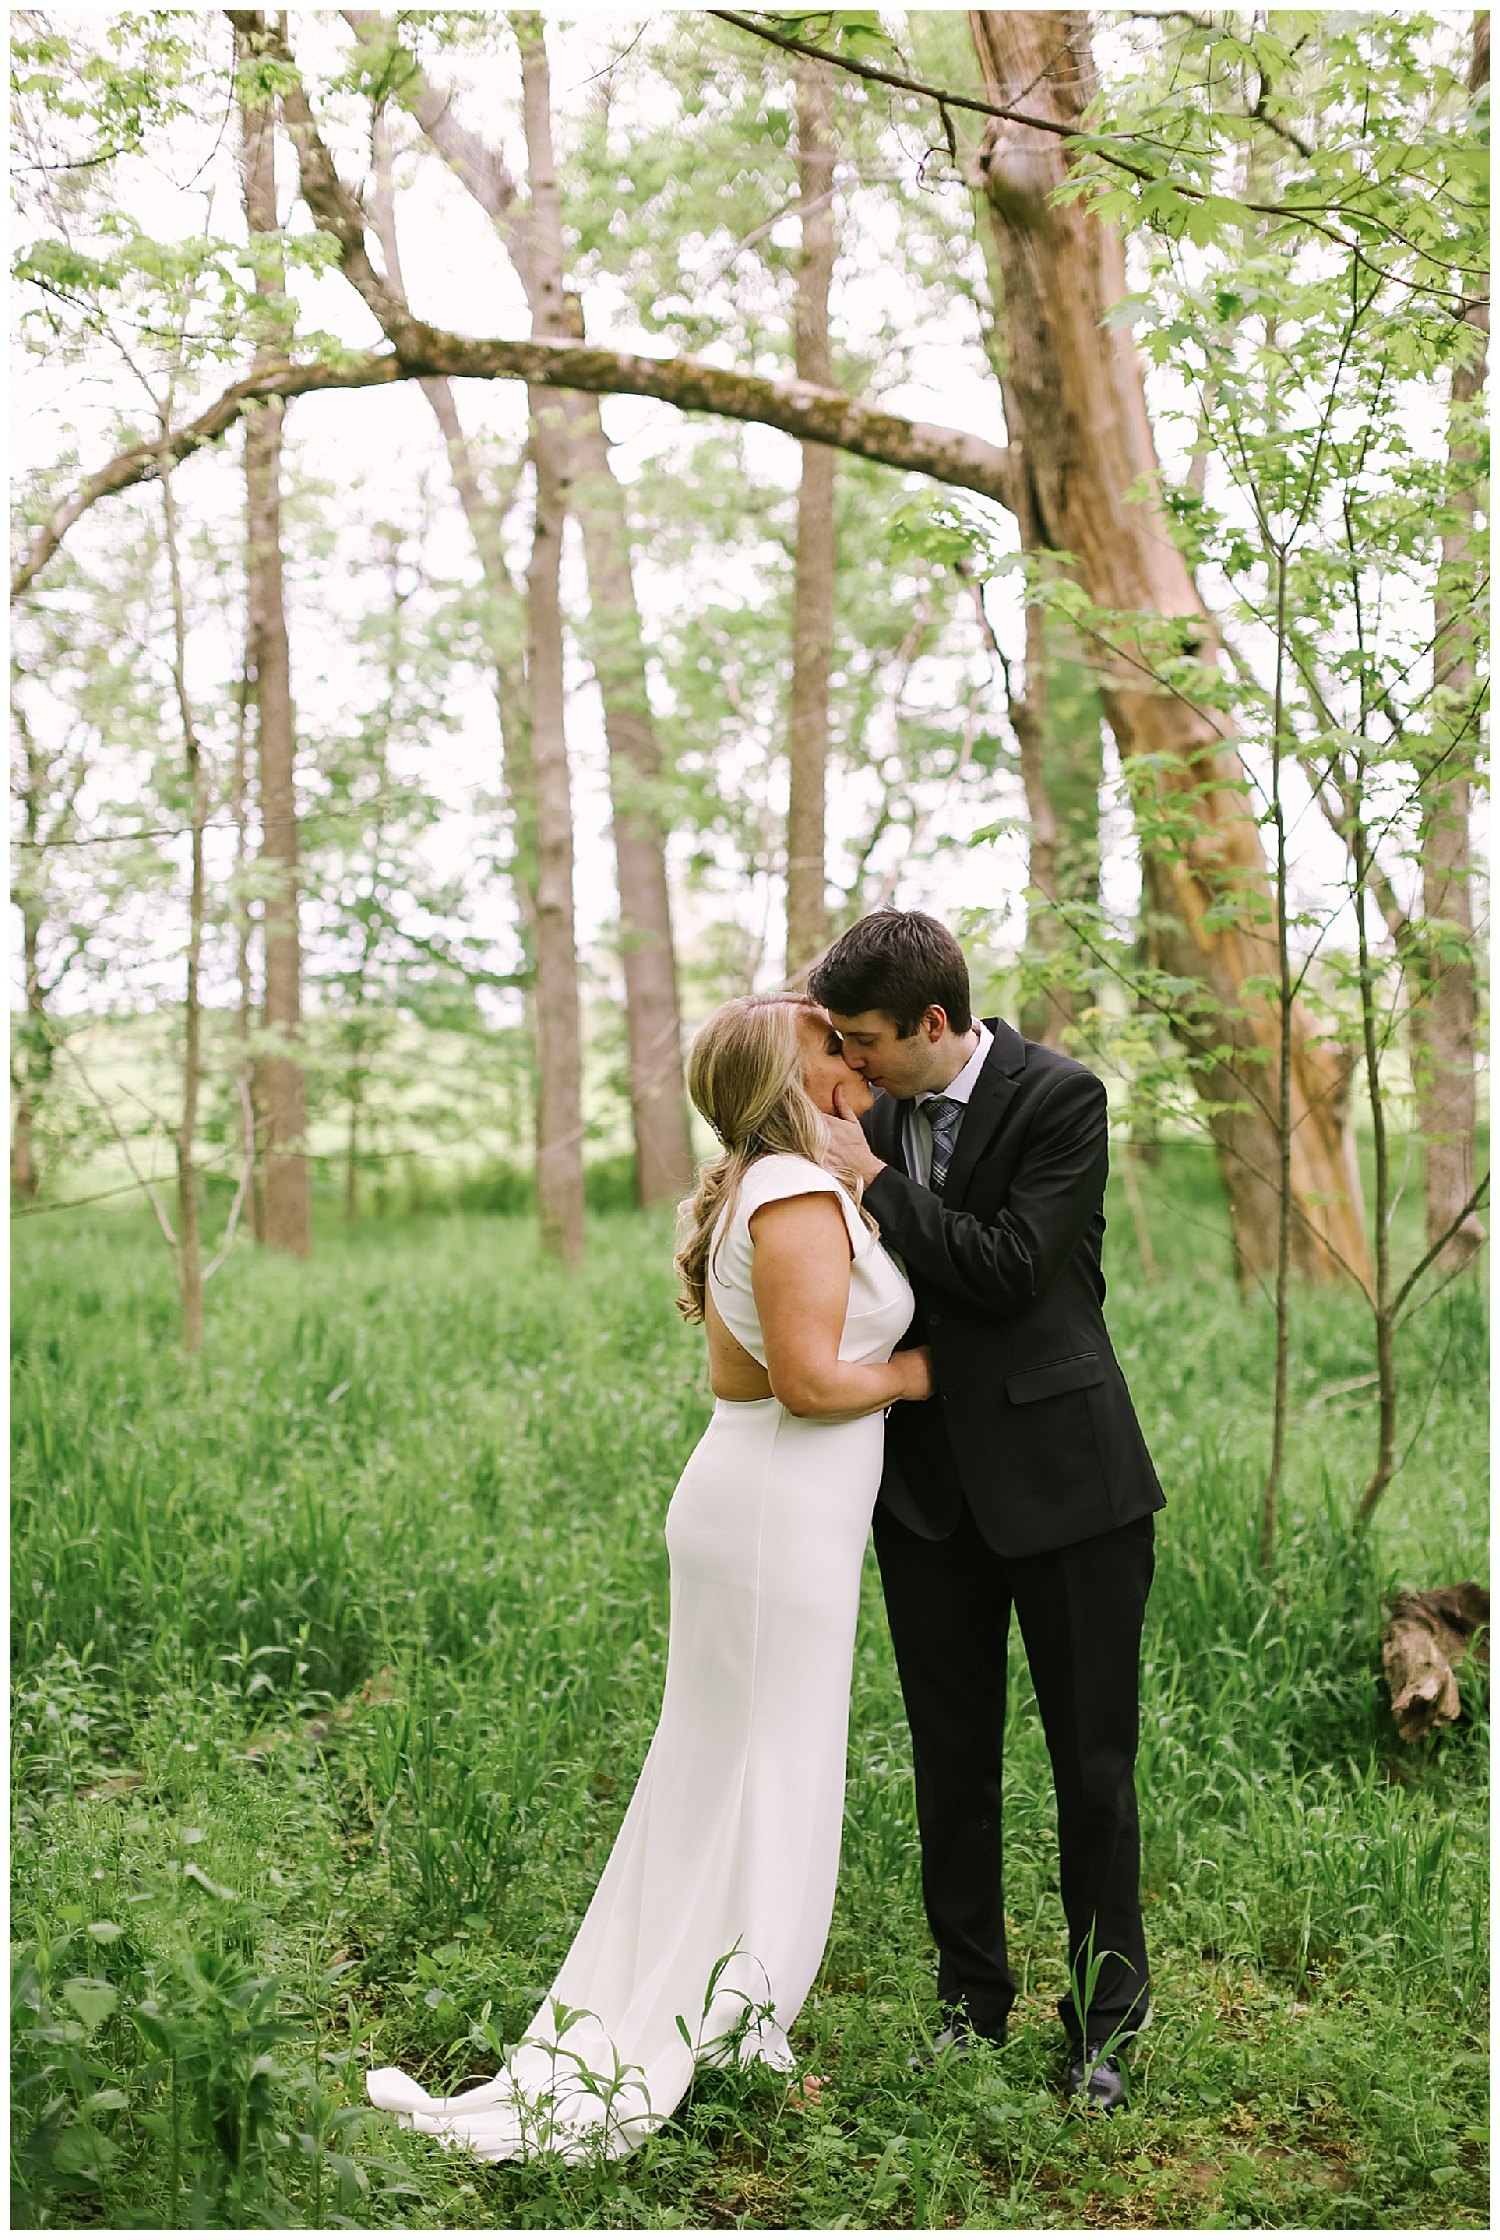 trent.and.kendra.photography.elopement.intimate.wedding-52.jpg